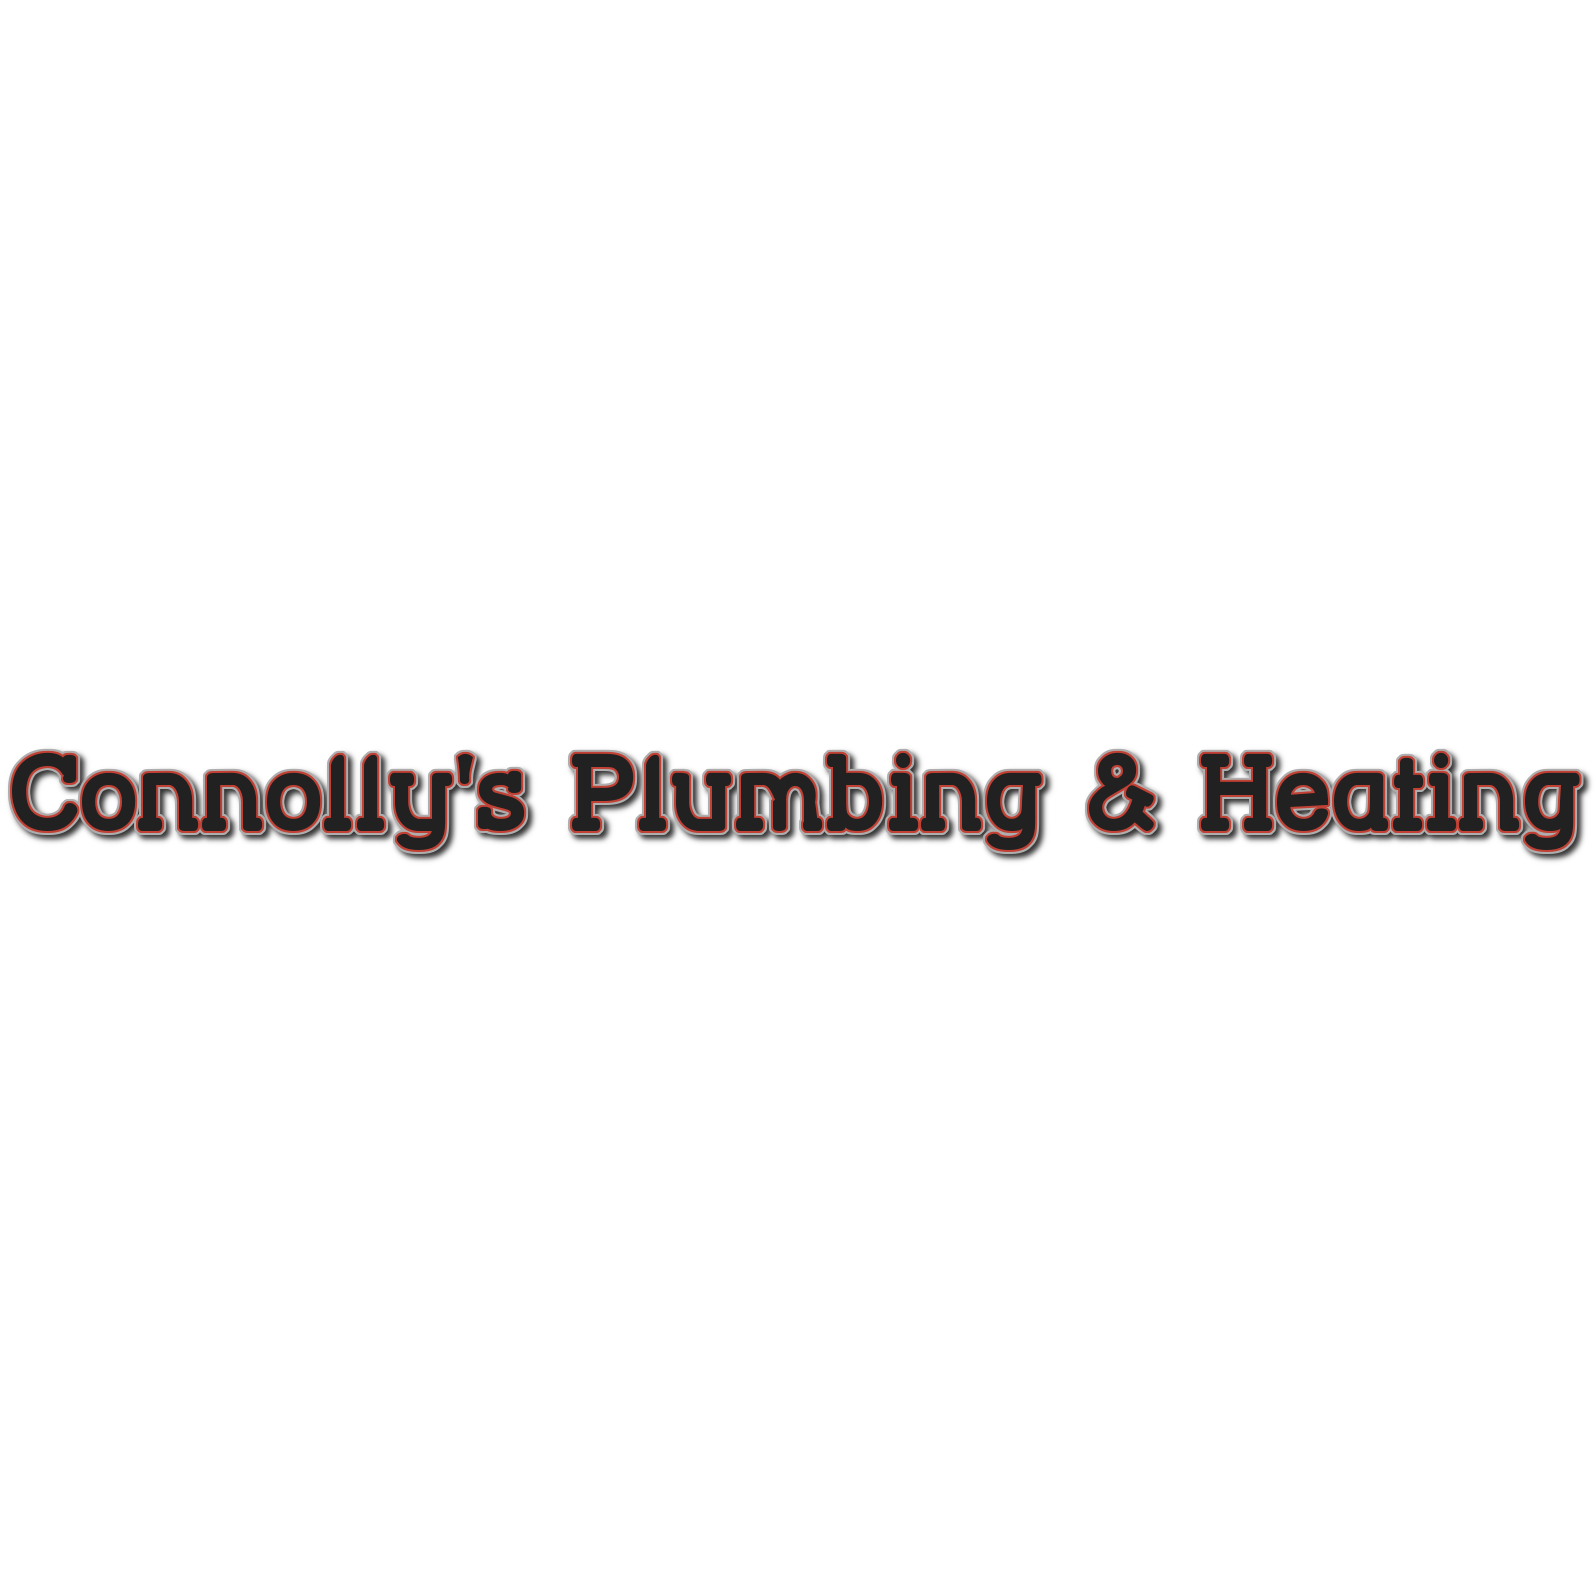 Connolly's Plumbing & Heating